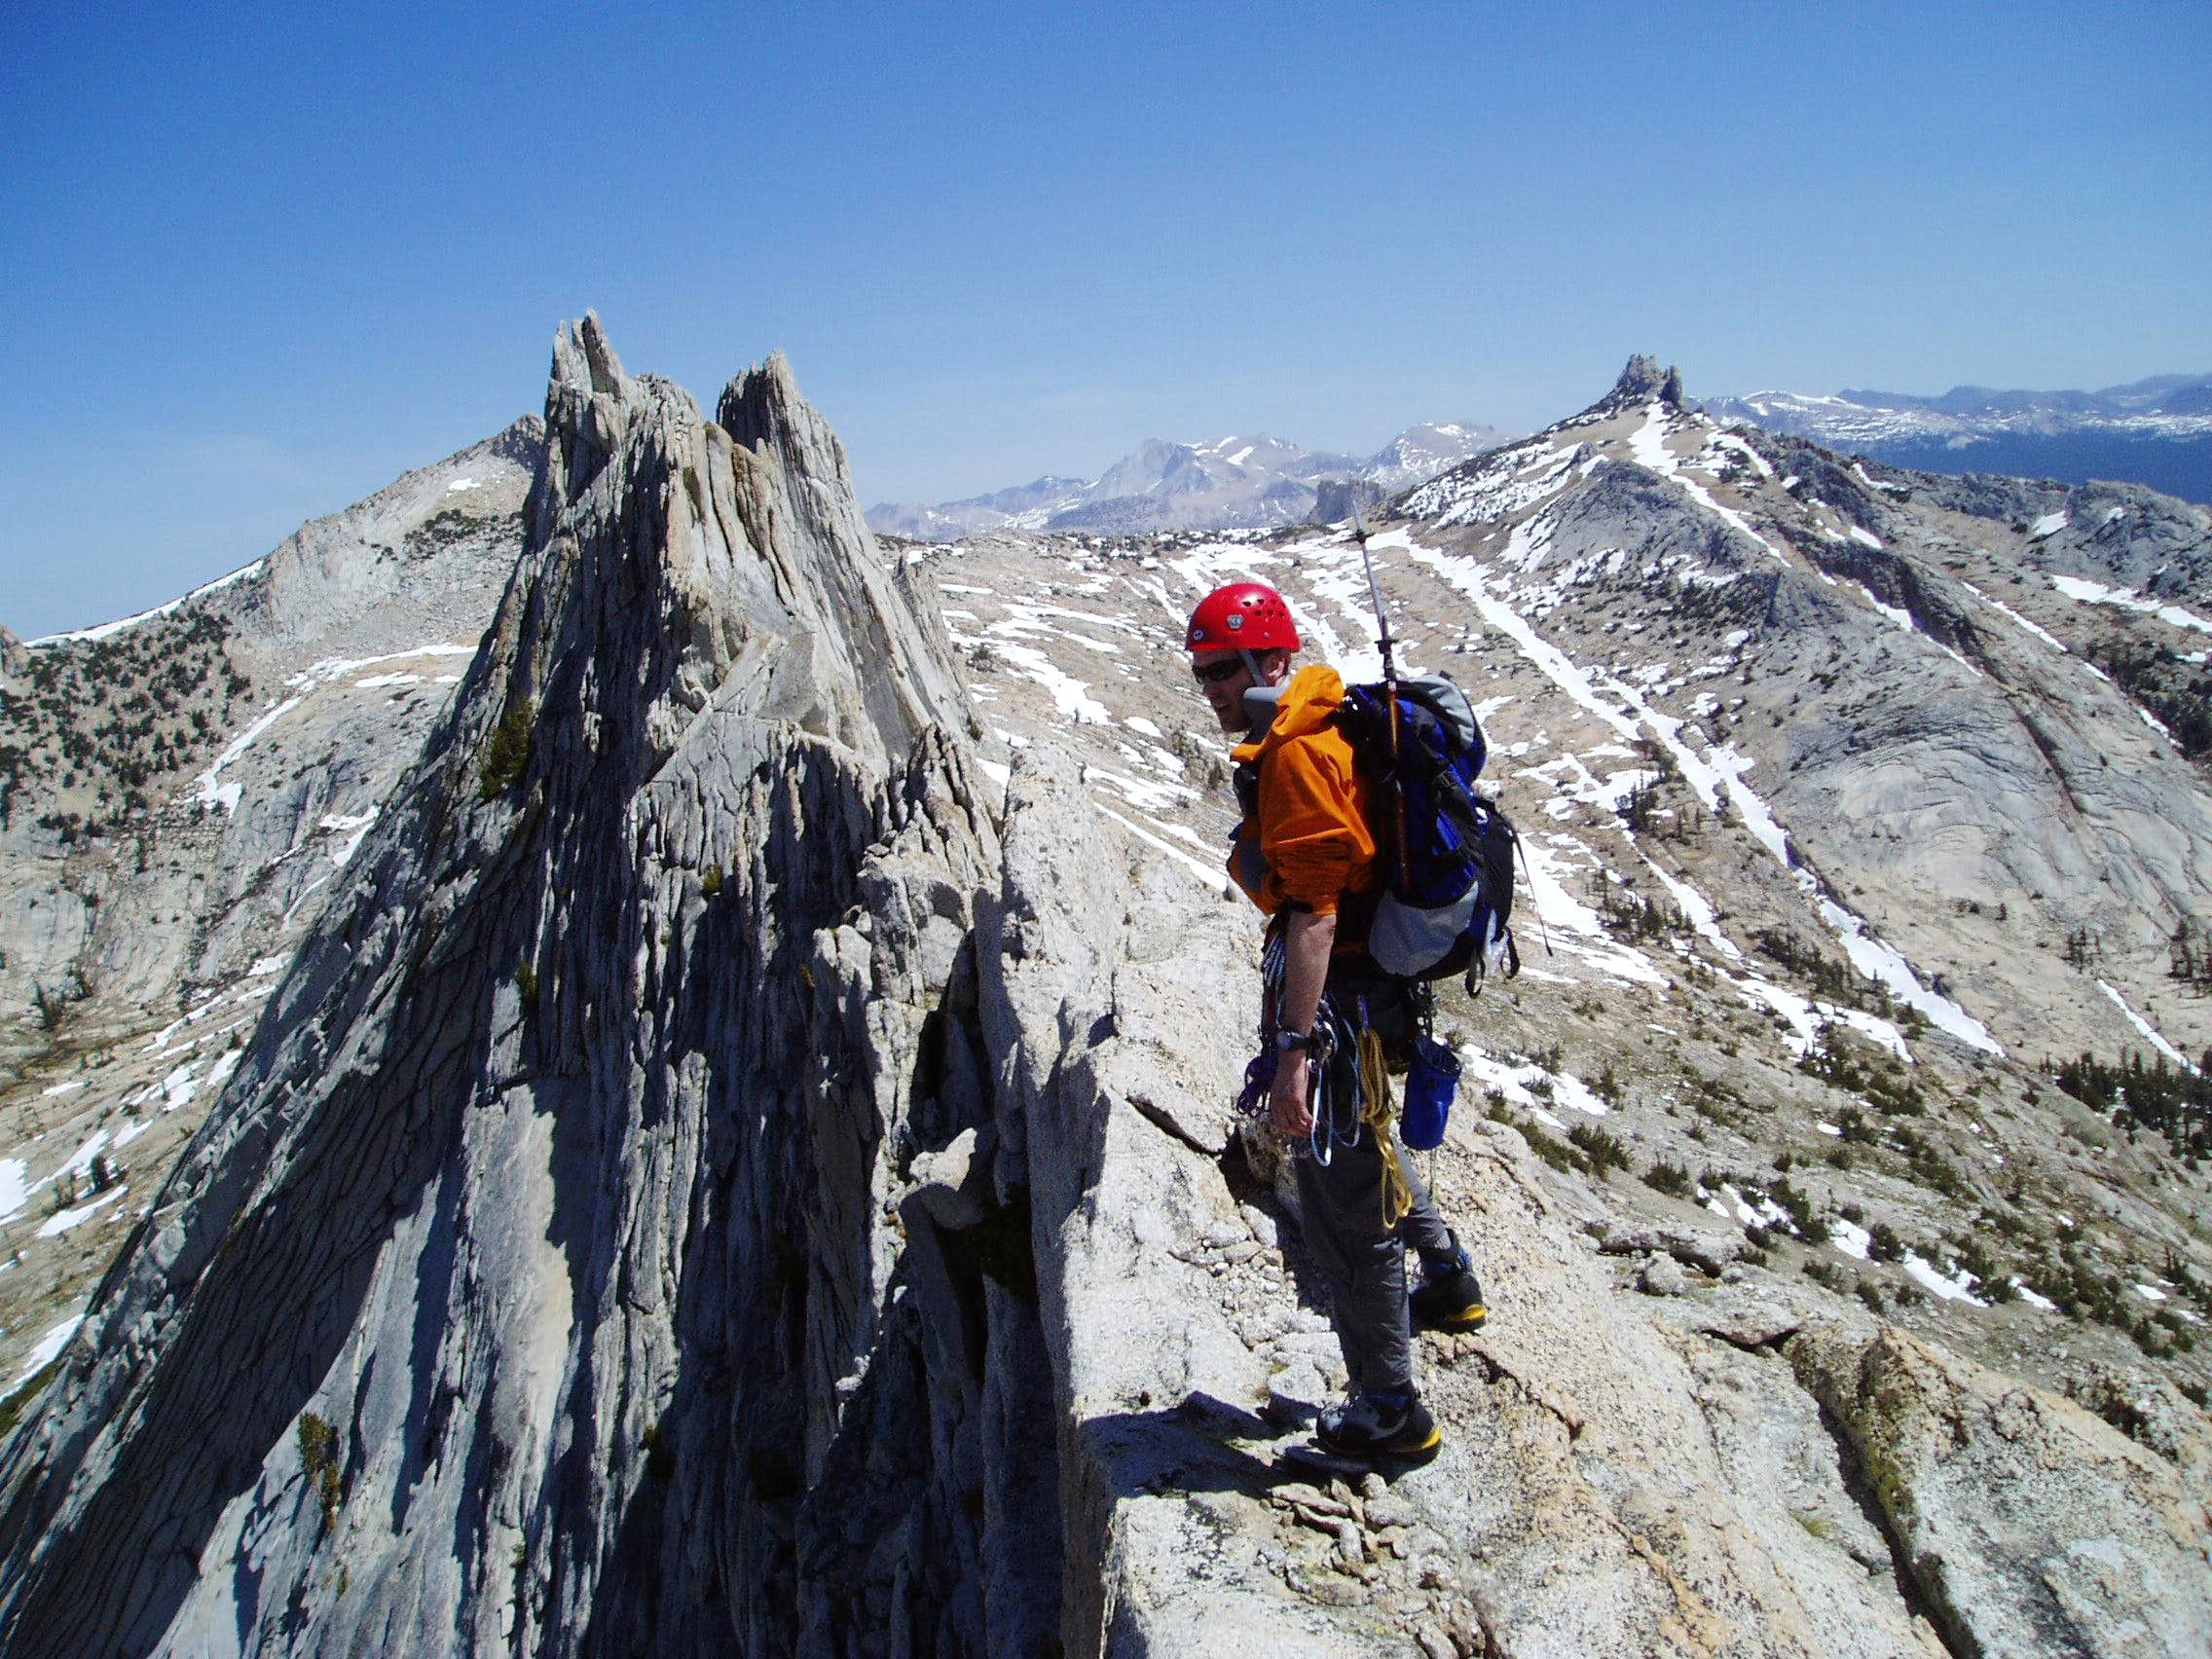 Isolation and Exhilaration on Matthes Crest